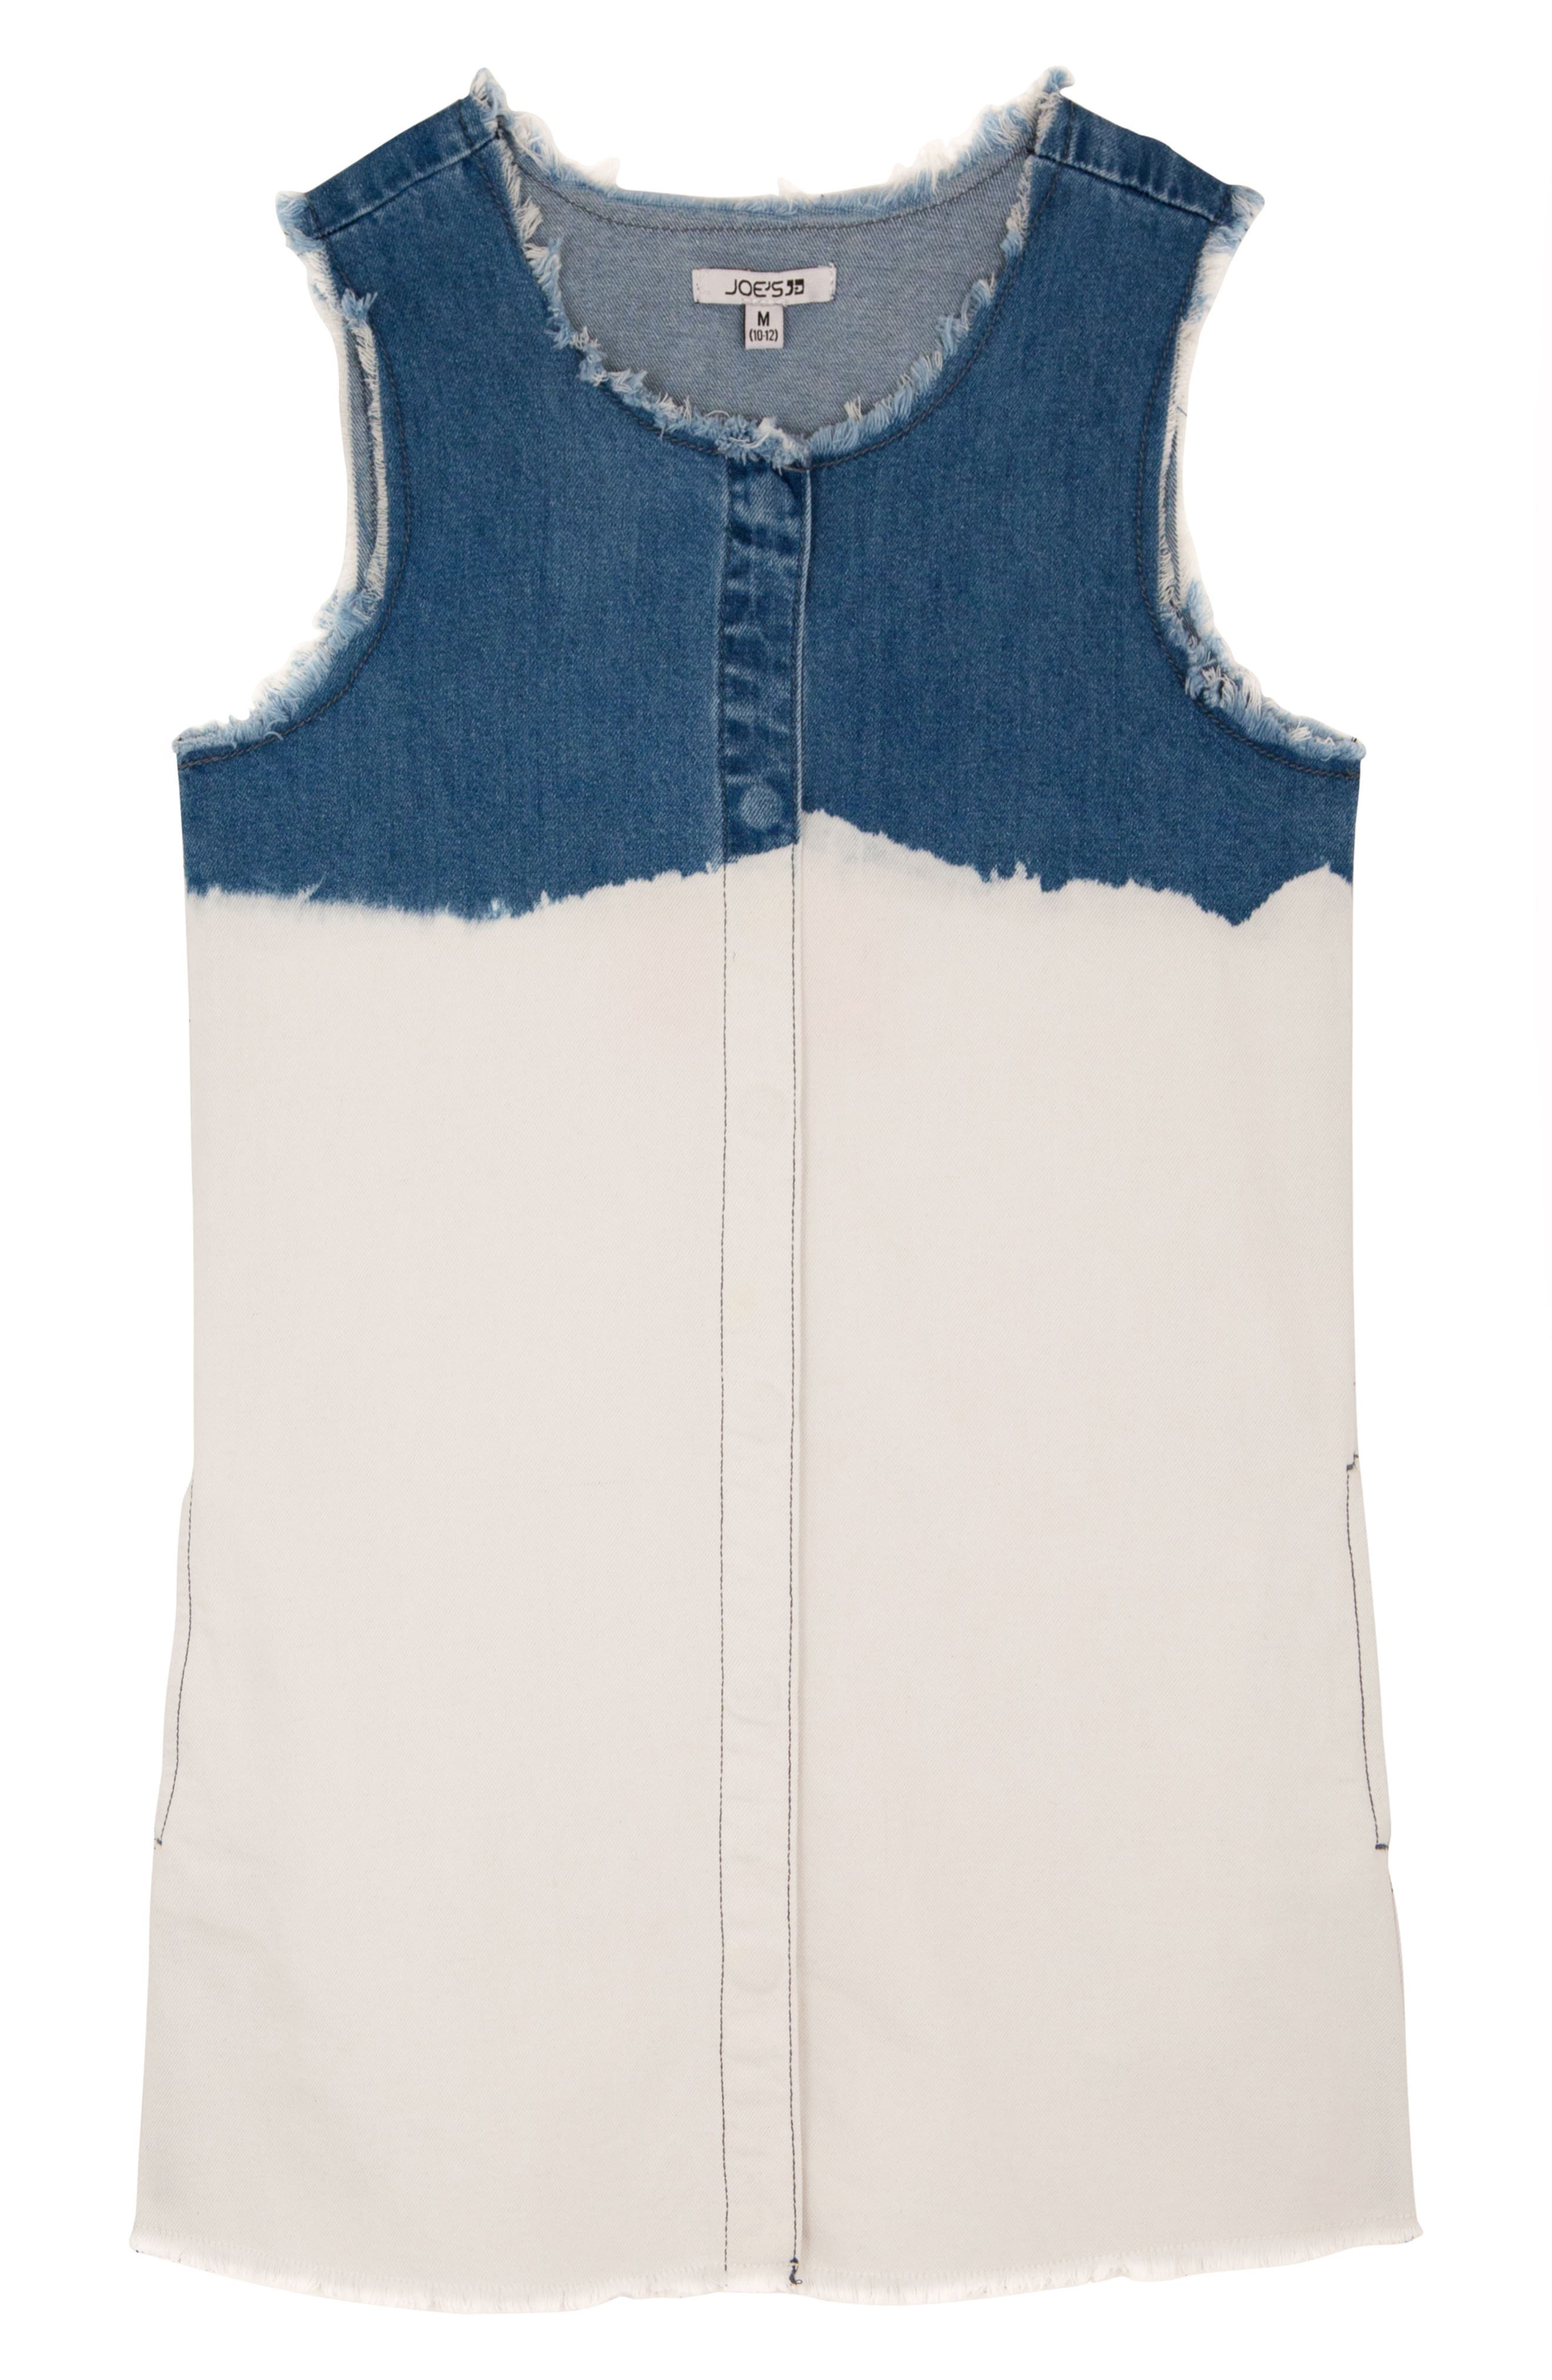 Joe's Fray Bleach Denim Shift Dress,                         Main,                         color, MAR1-MARINA